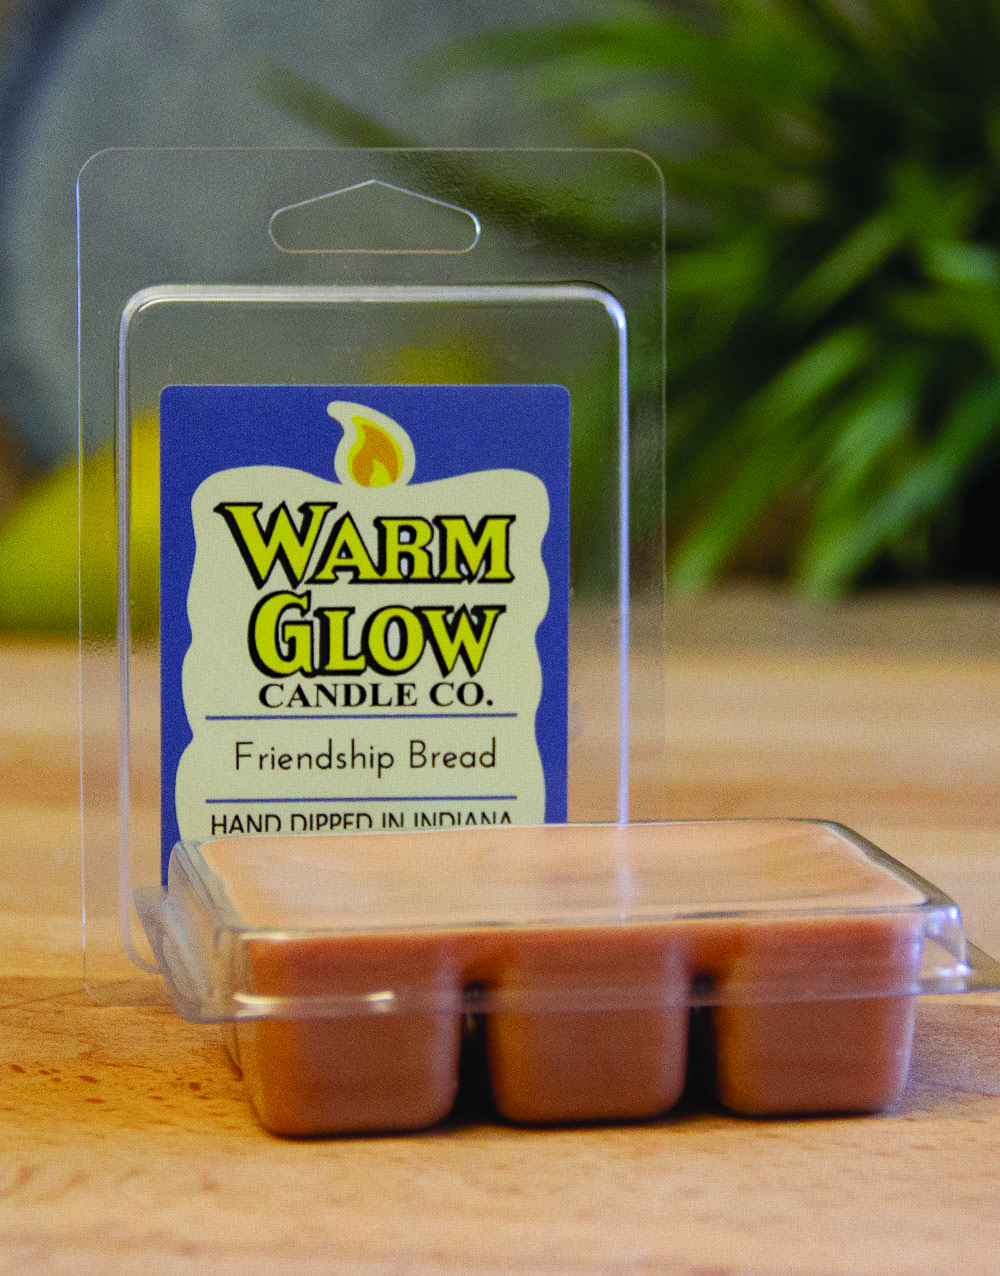 Friendship Bread wax melts